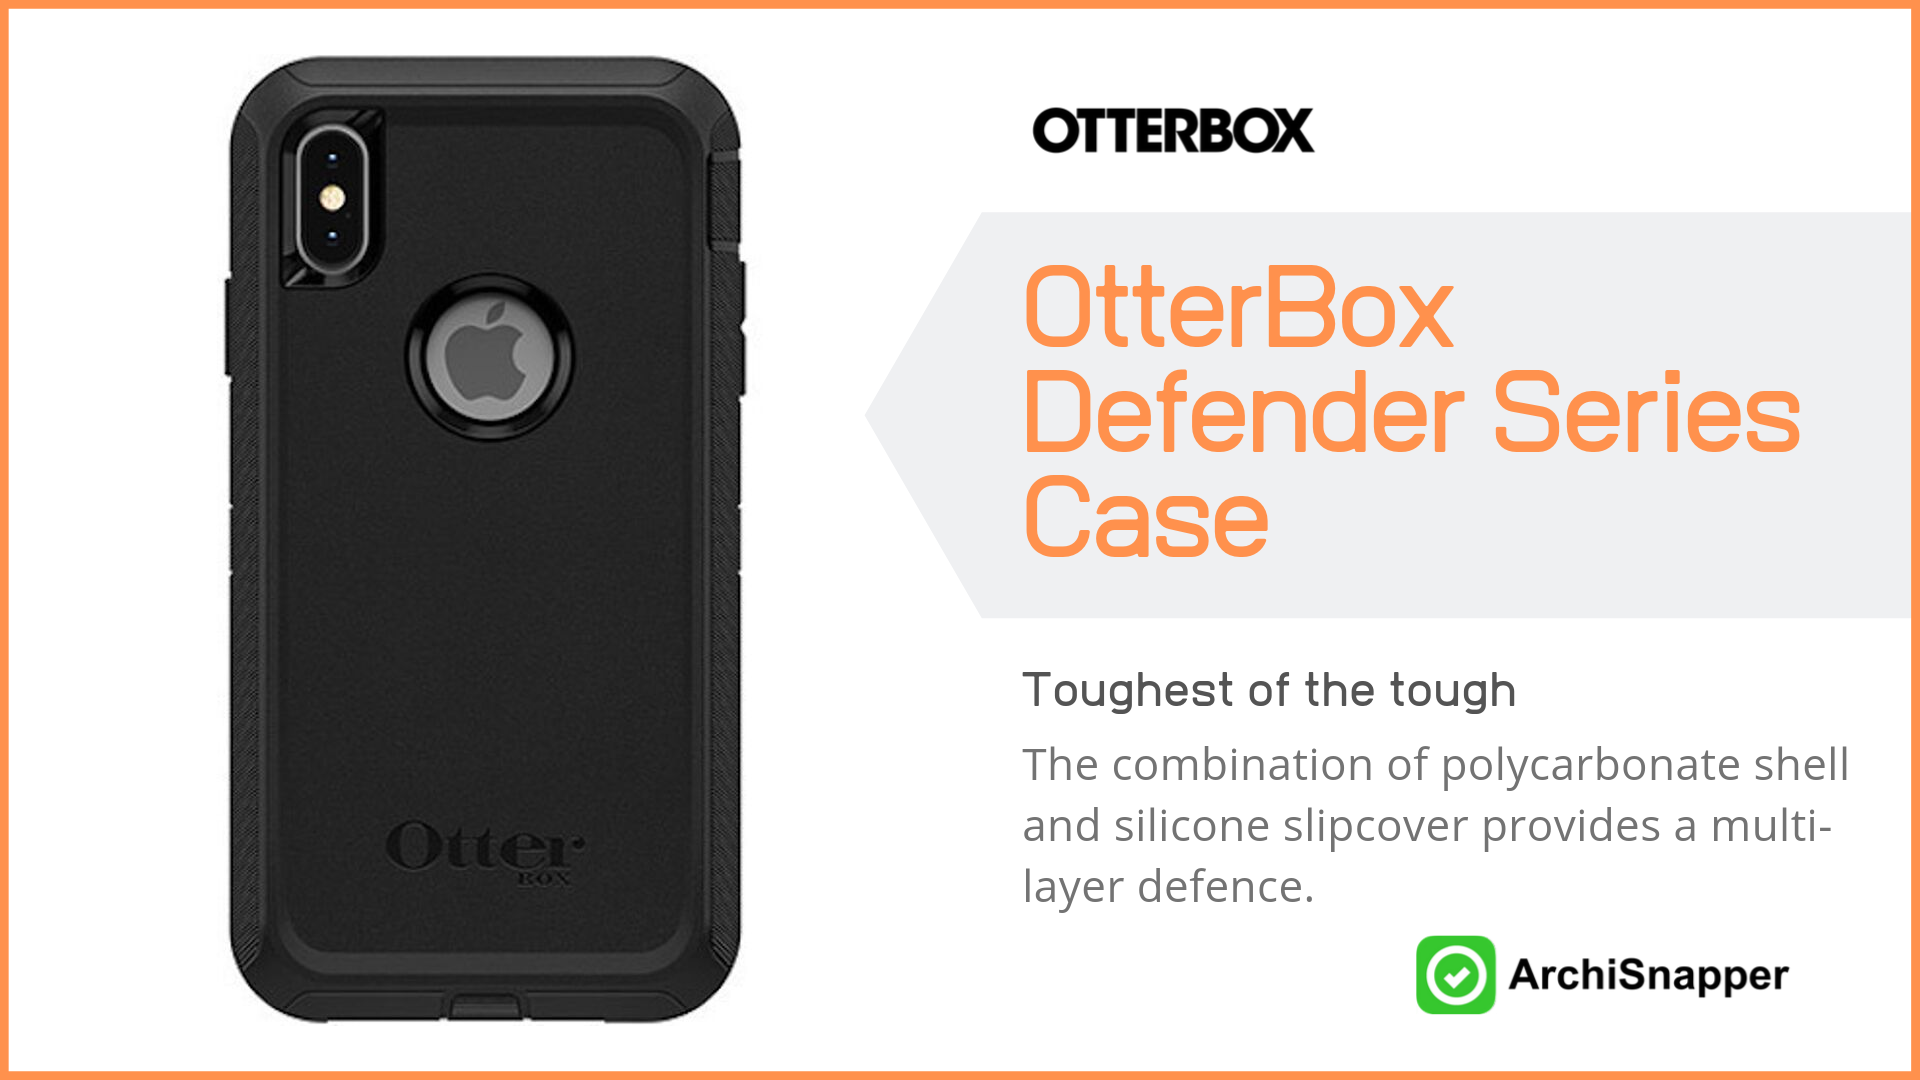 OtterBox Defender Case | Top Tech for Architects Presented by Archisnapper.